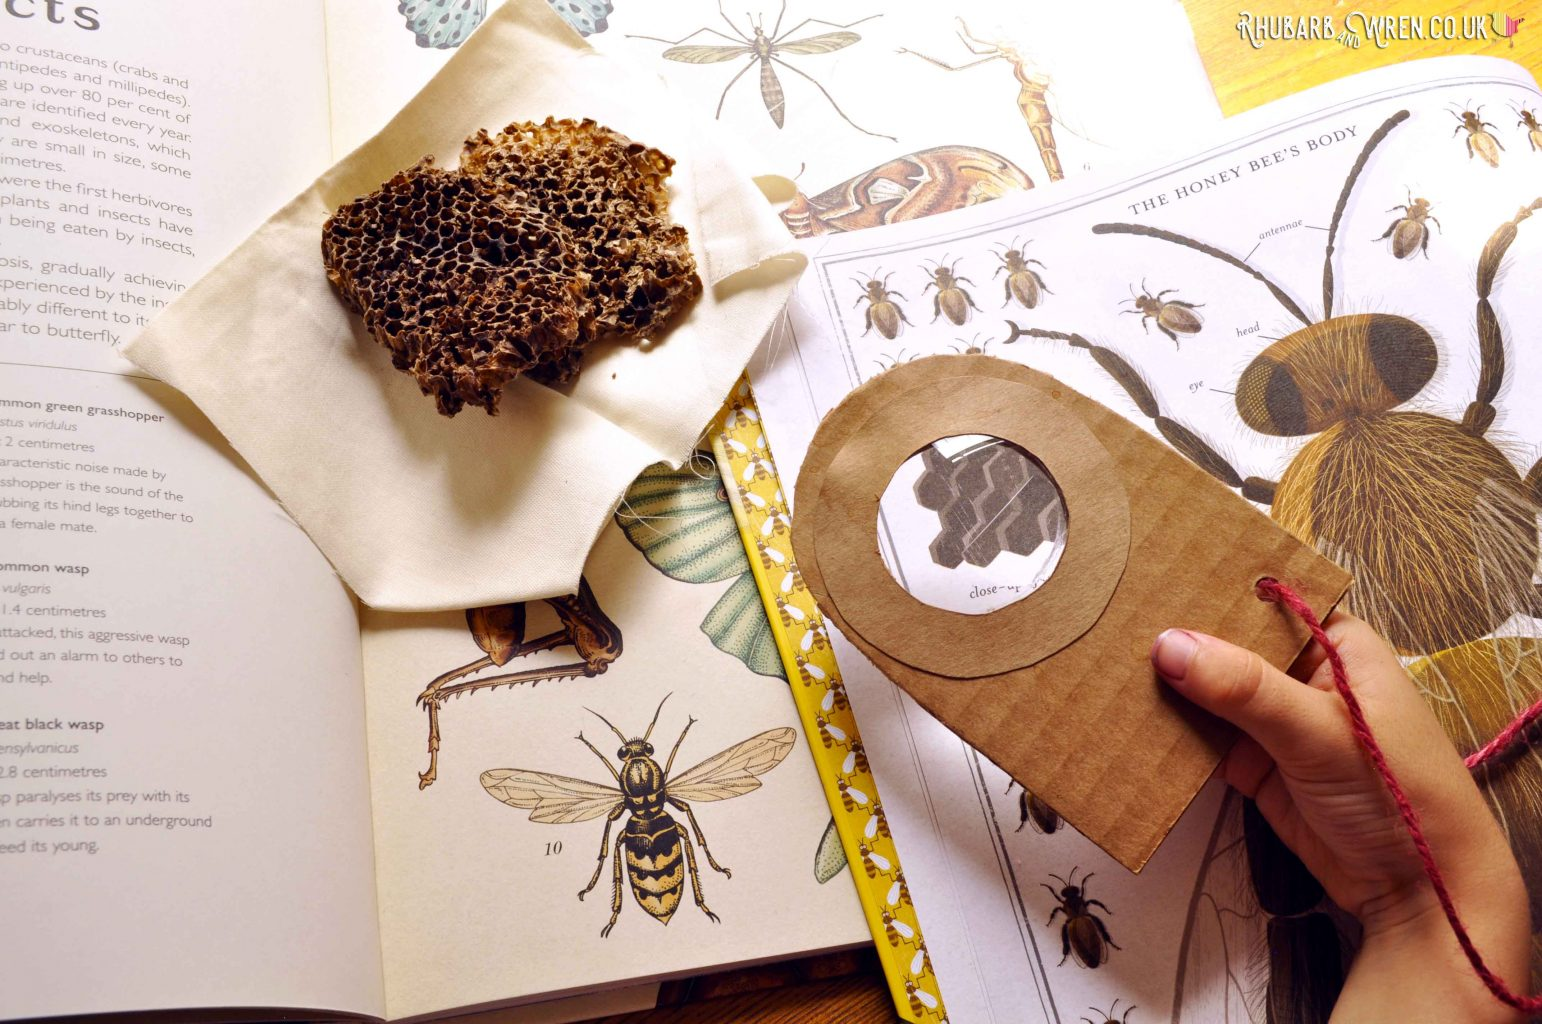 A real magnifying glass made from cardboard